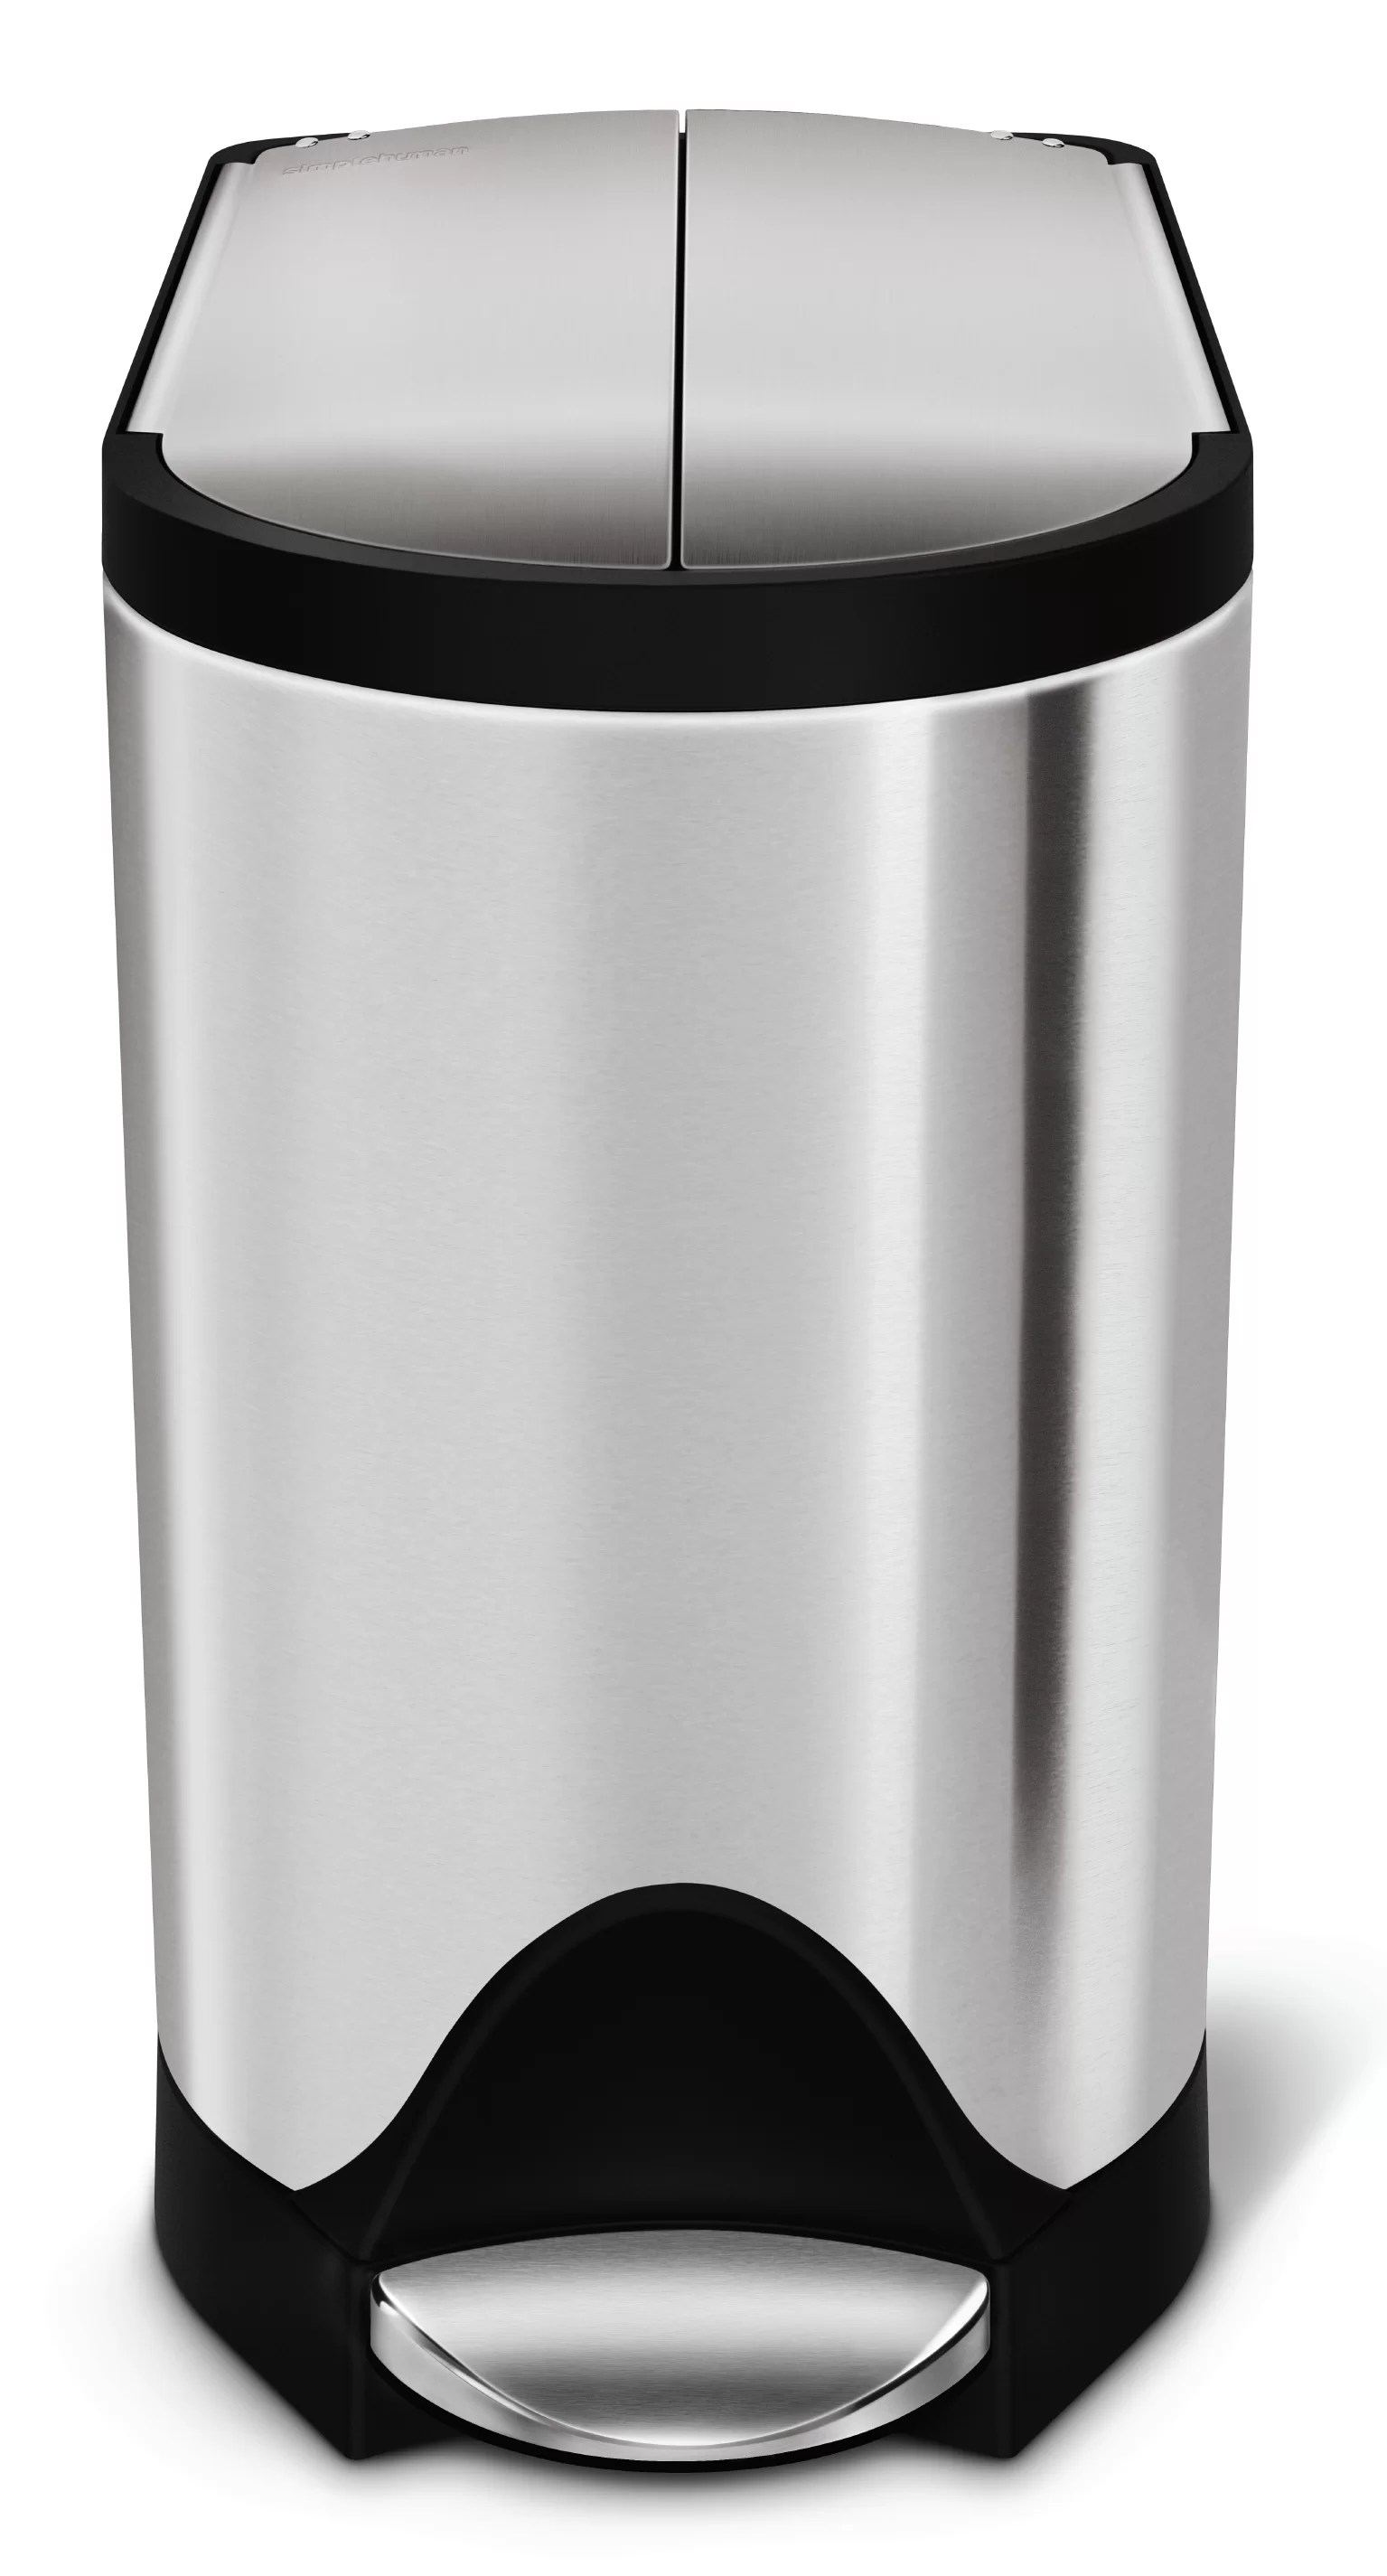 Small White Trash Can With Lid 2 6 Gallon Butterfly Step Trash Can Brushed Stainless Steel